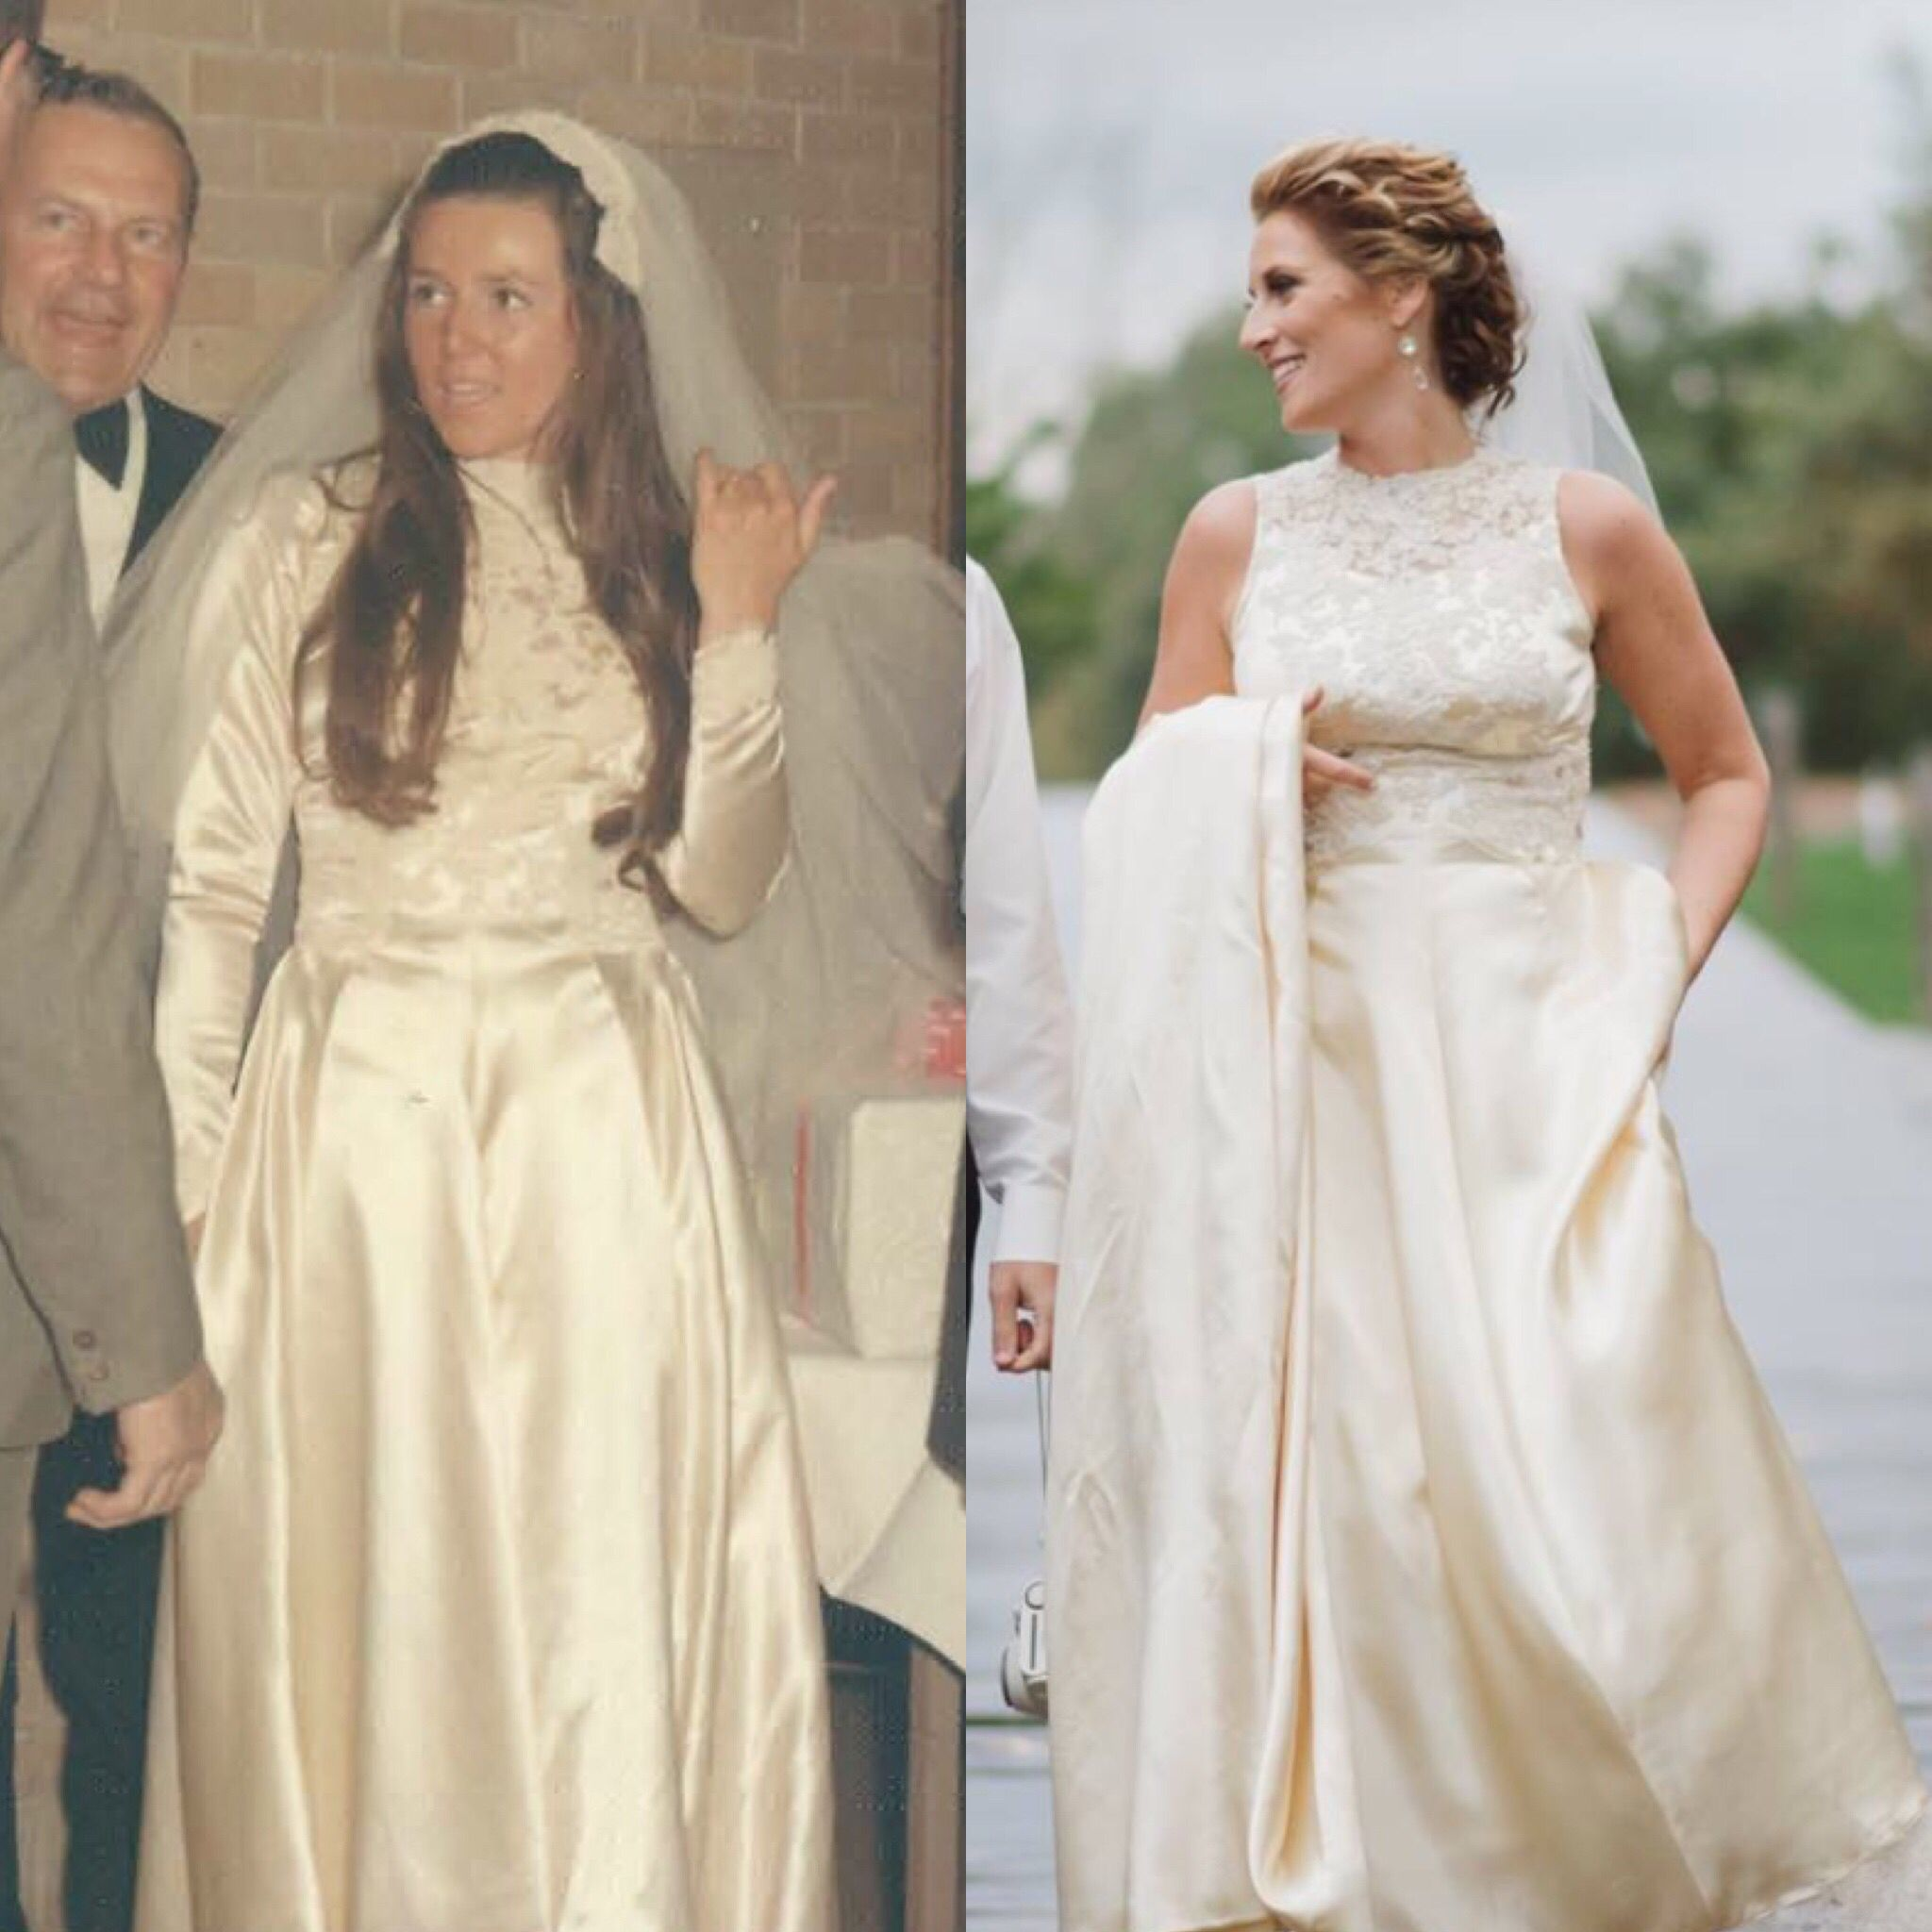 Refashion wedding dress into cocktail dress